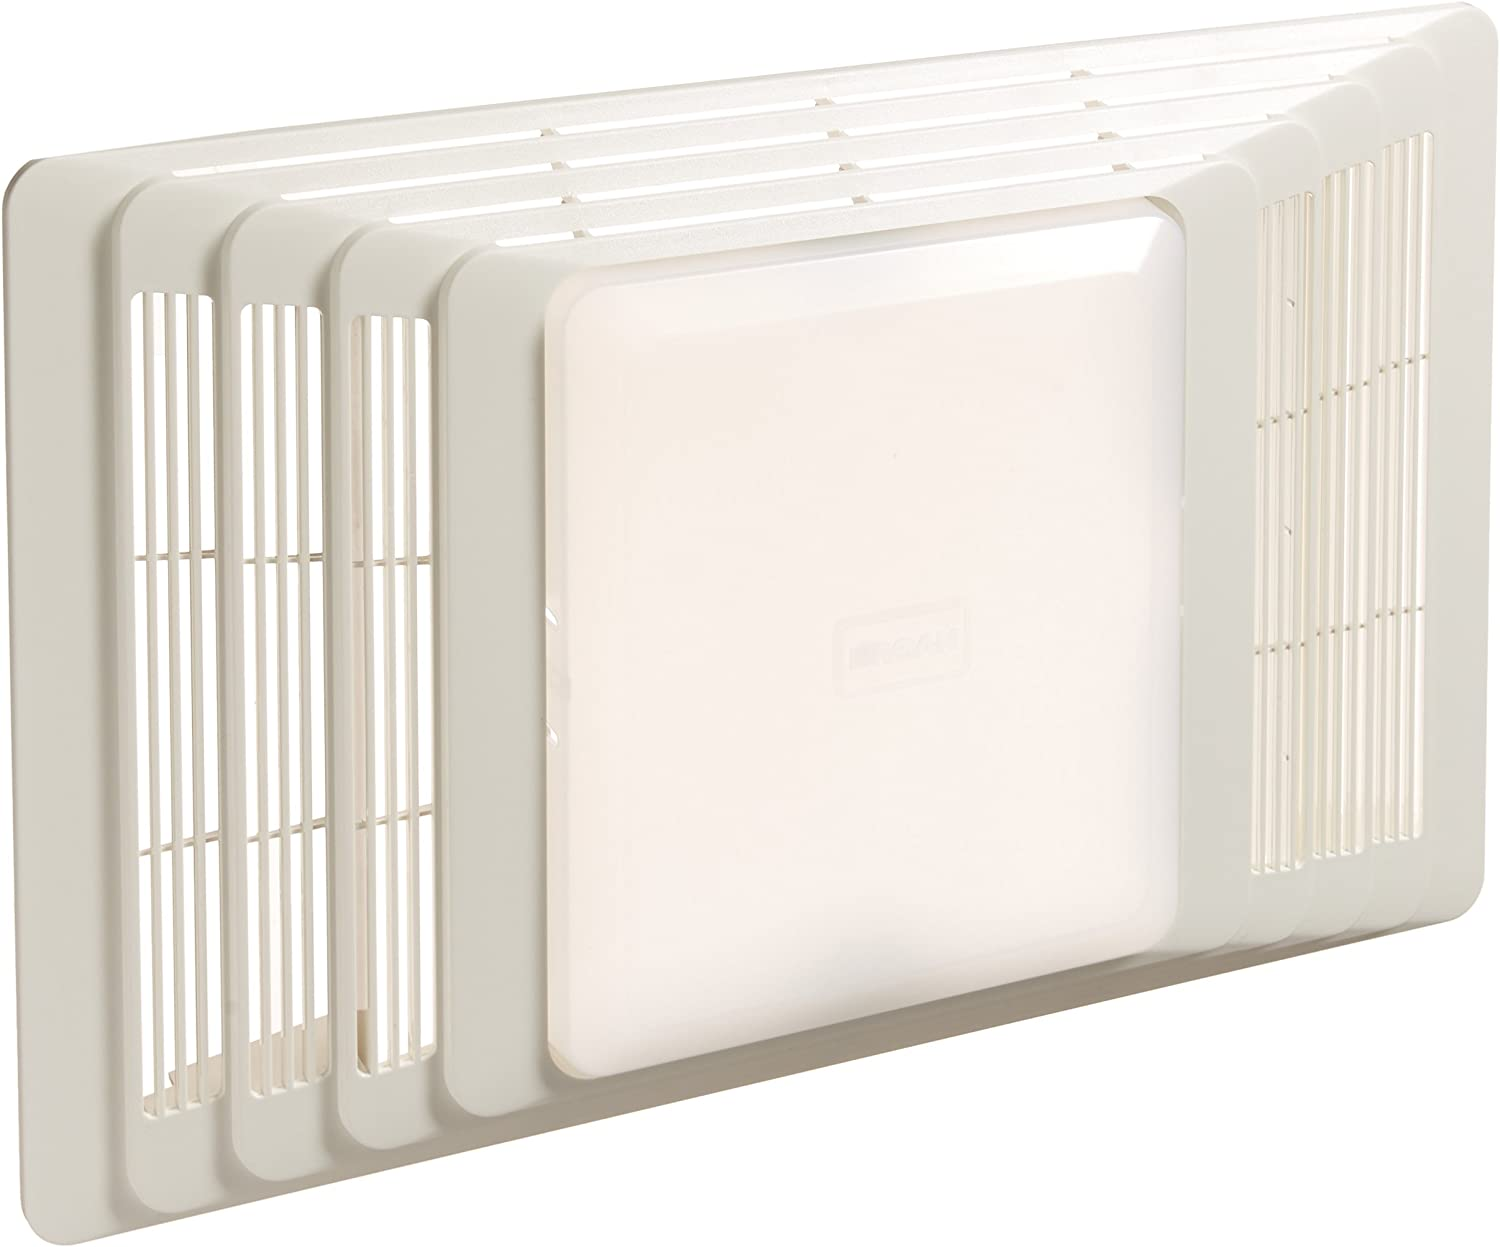 Amazon Com Broan S97013662 Bathroom Fan Cover Grille And Lens Assembly Kit Home Kitchen